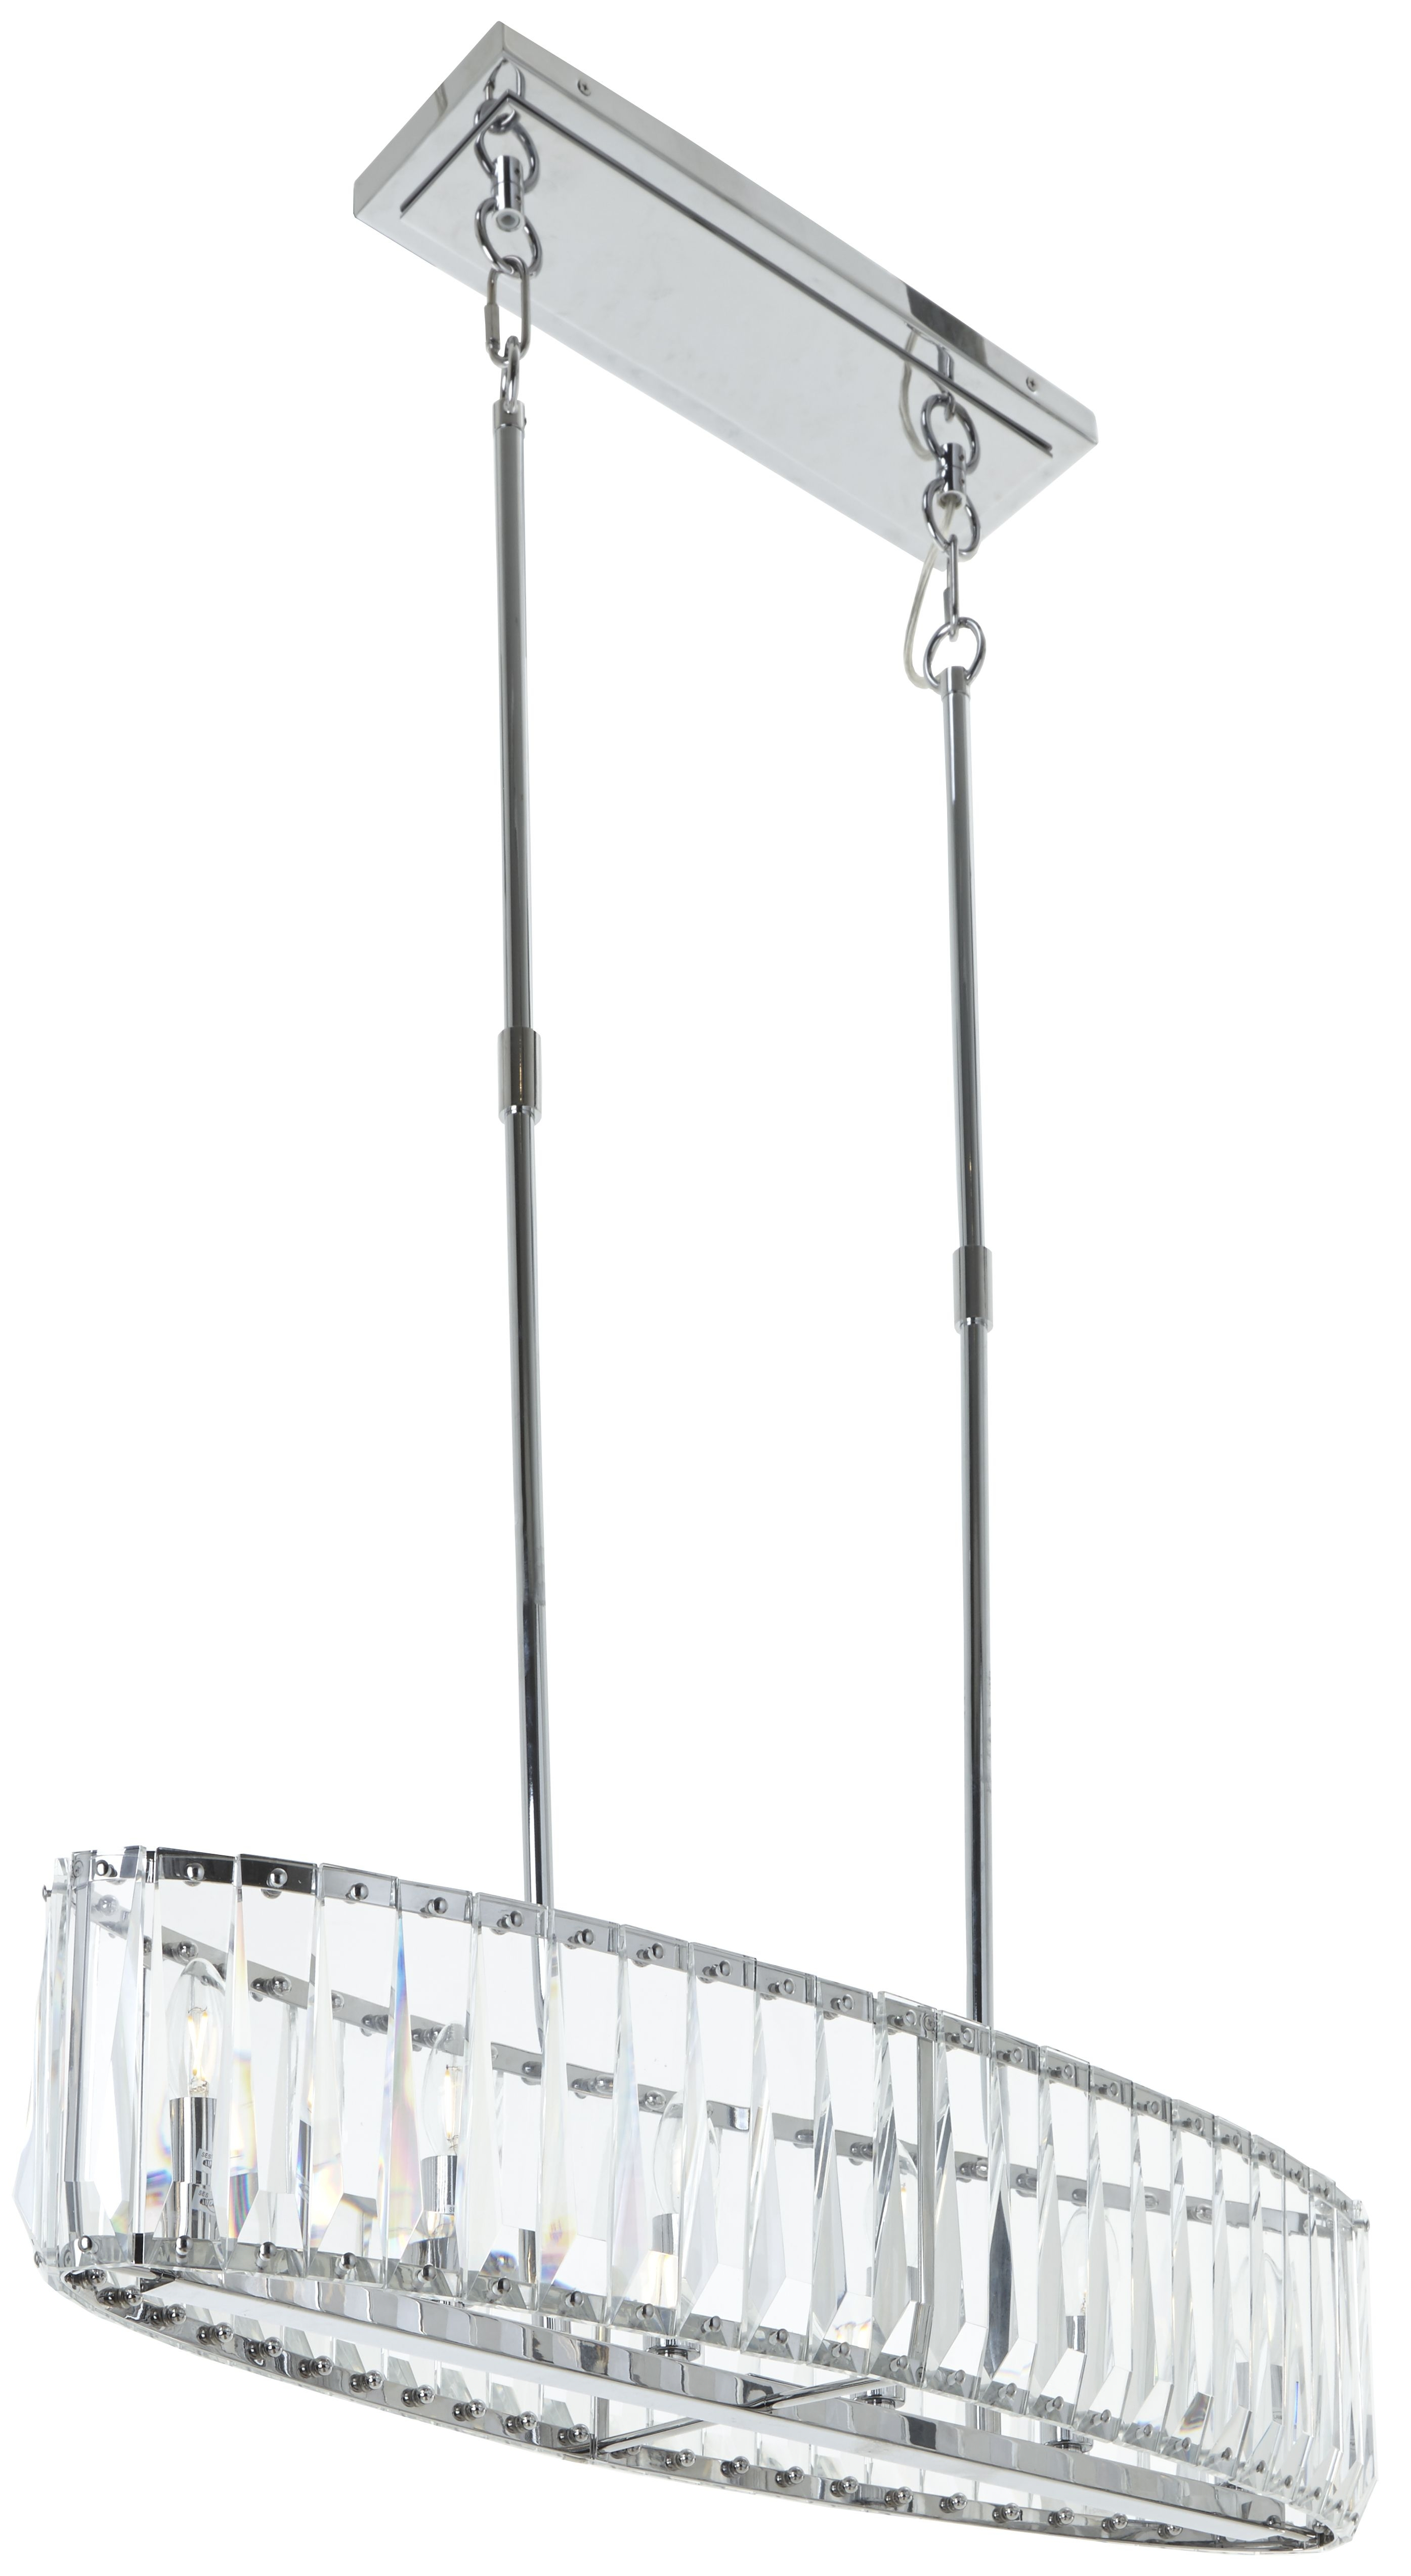 Rv Astley Mai Ceiling Pendant Light – Nickel And Crystal With Regard To Hurst 1 Light Single Cylinder Pendants (Gallery 27 of 30)